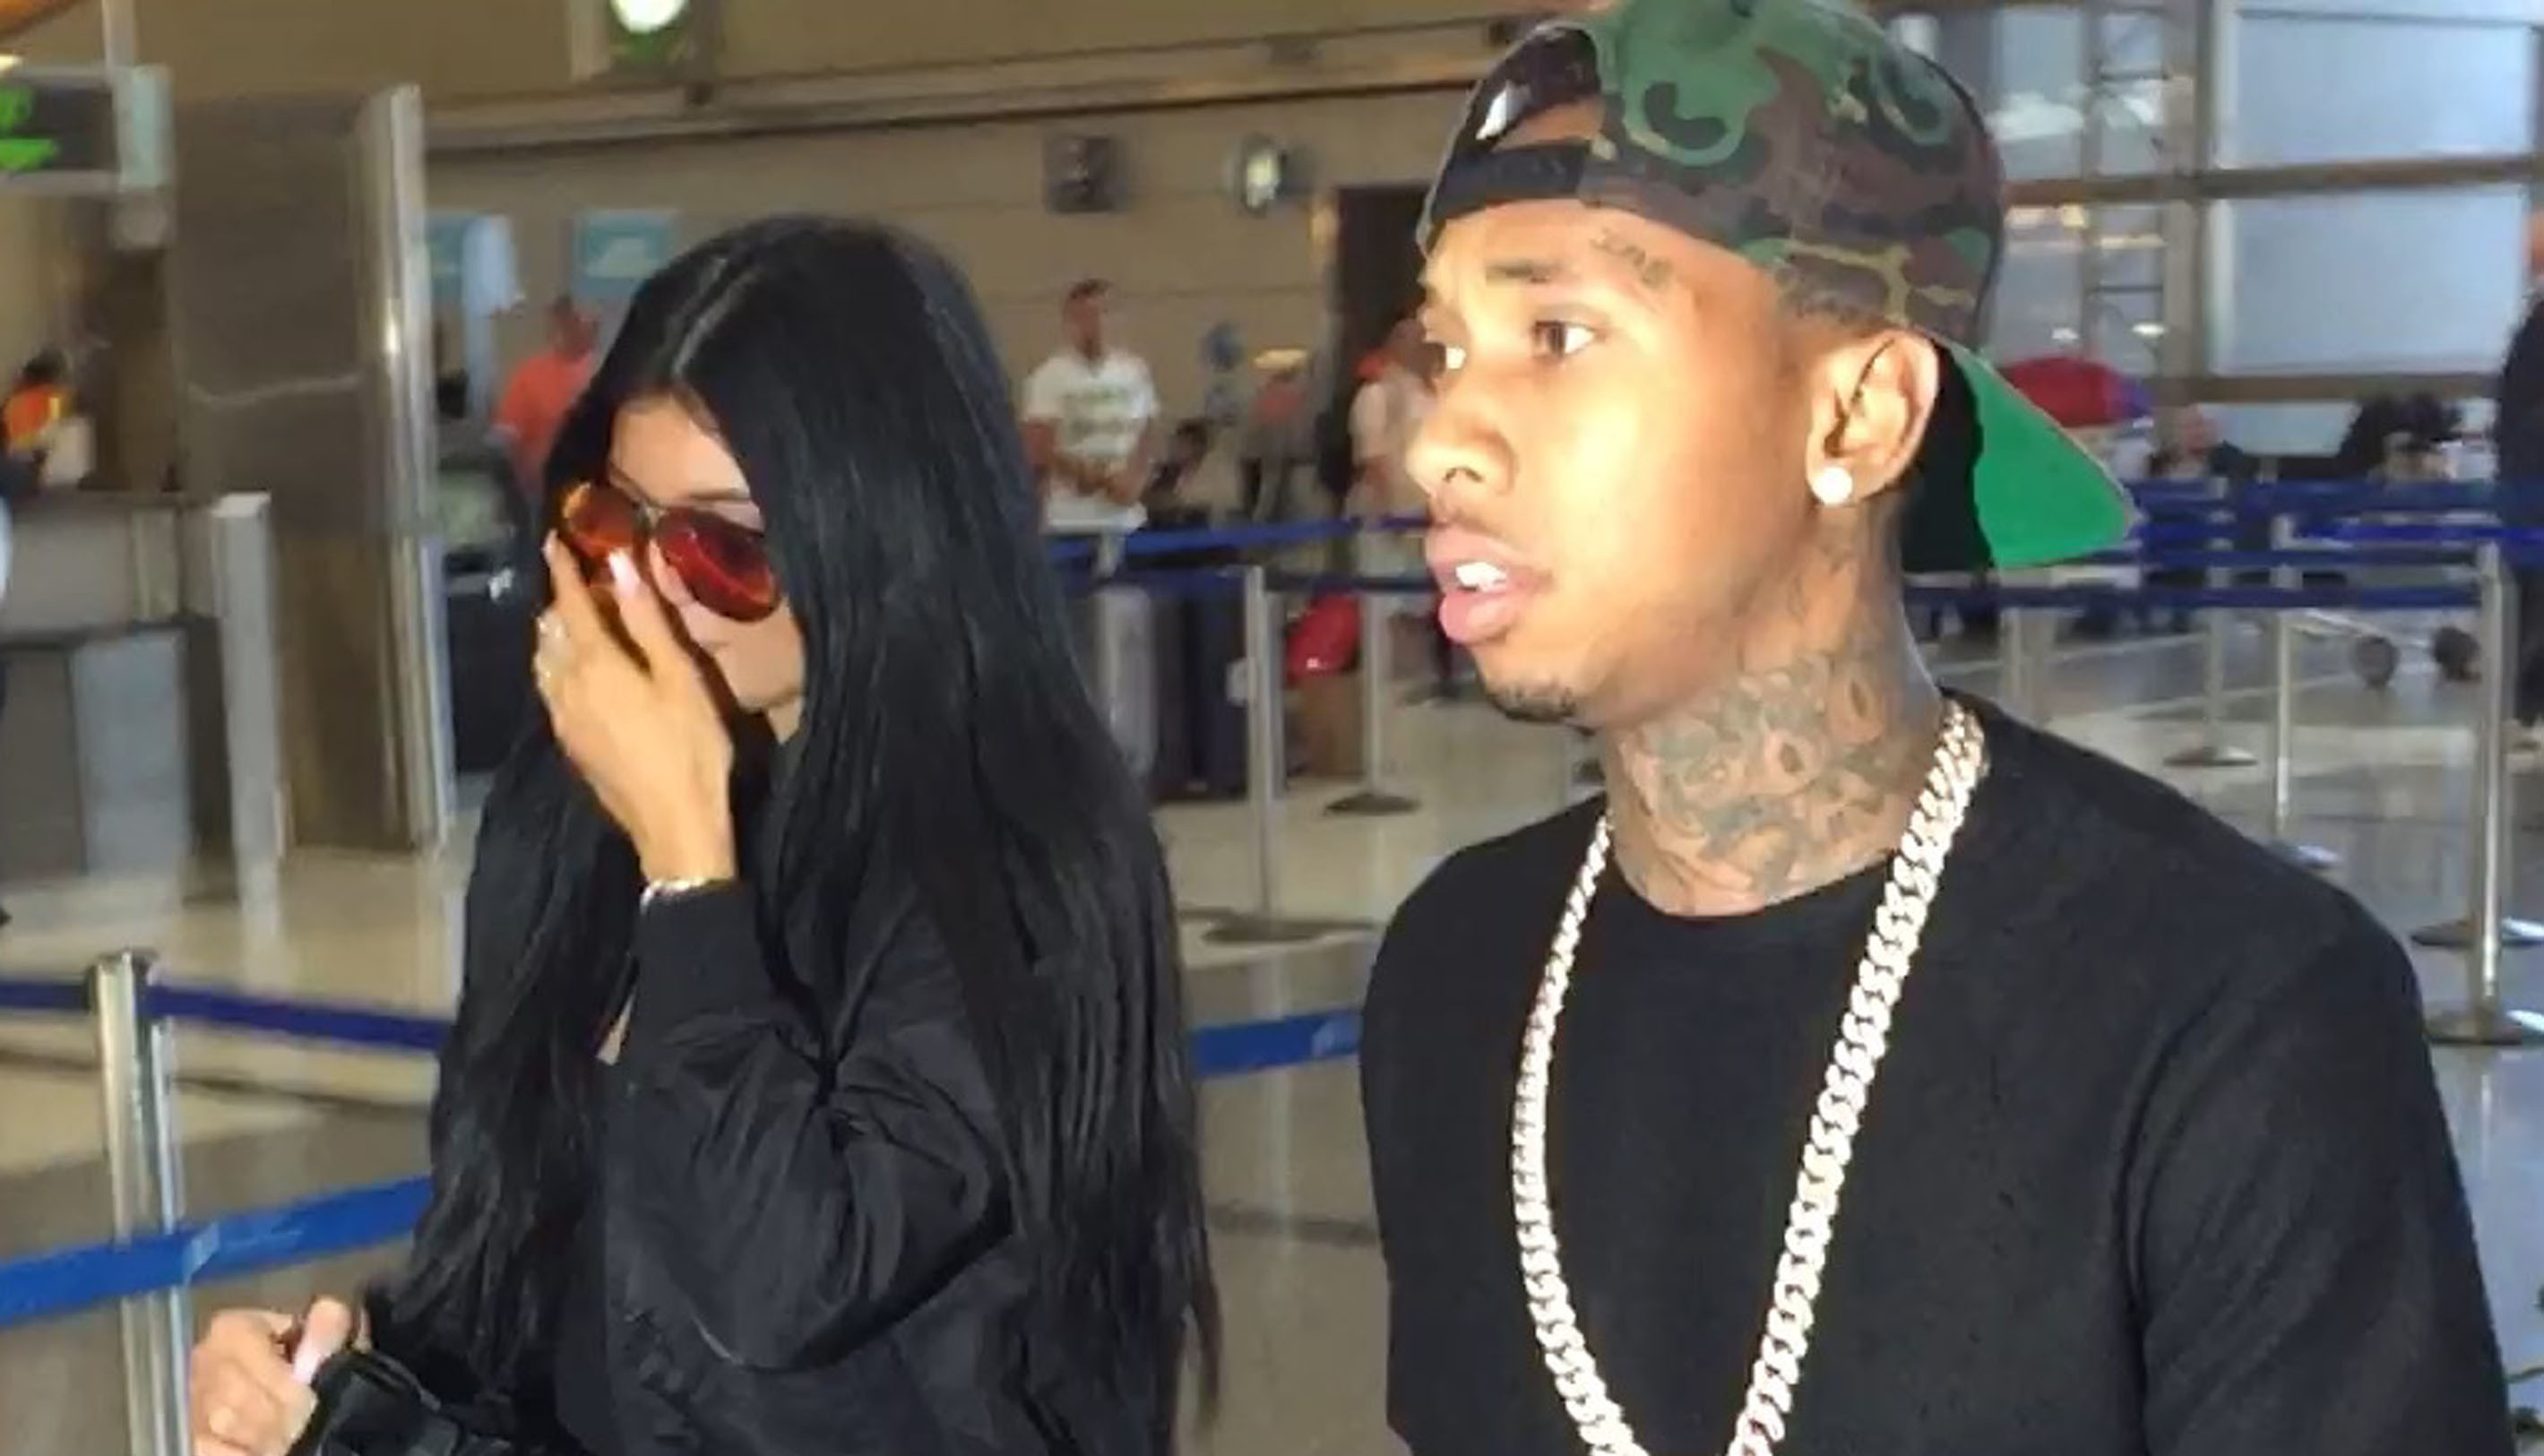 Tygas Penis Pics Leak and Texts Show Hes Cheating on